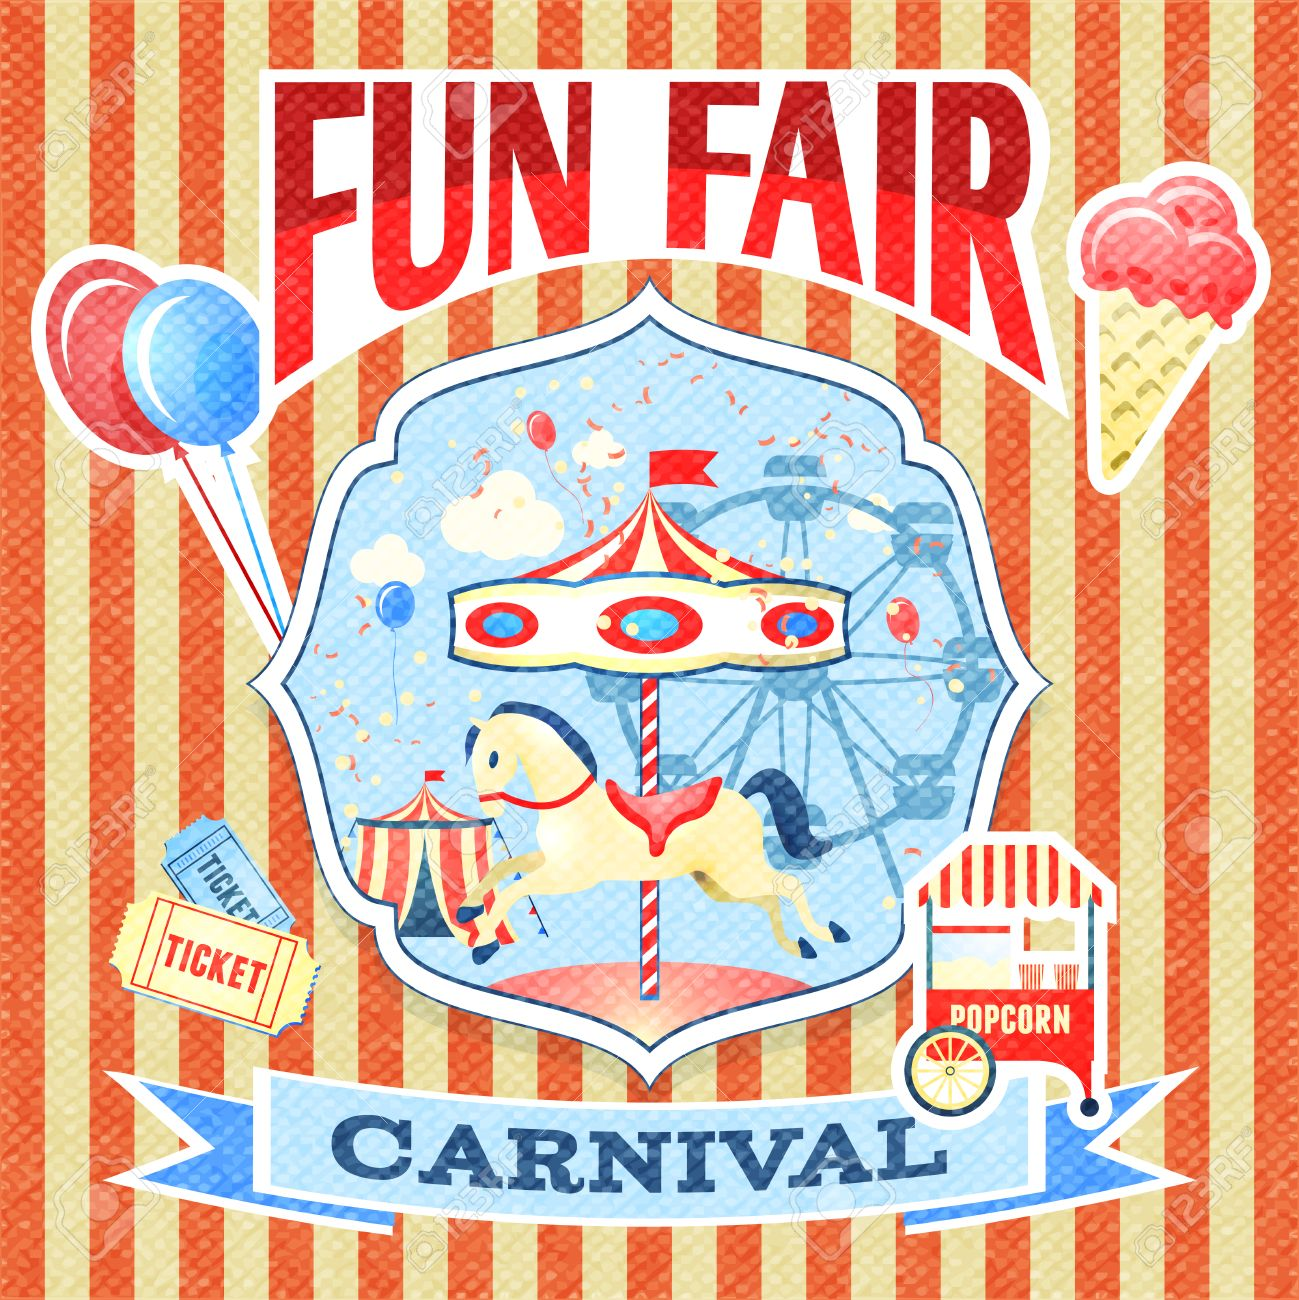 Vintage Carnival Fun Fair Theme Park Poster Template Vector